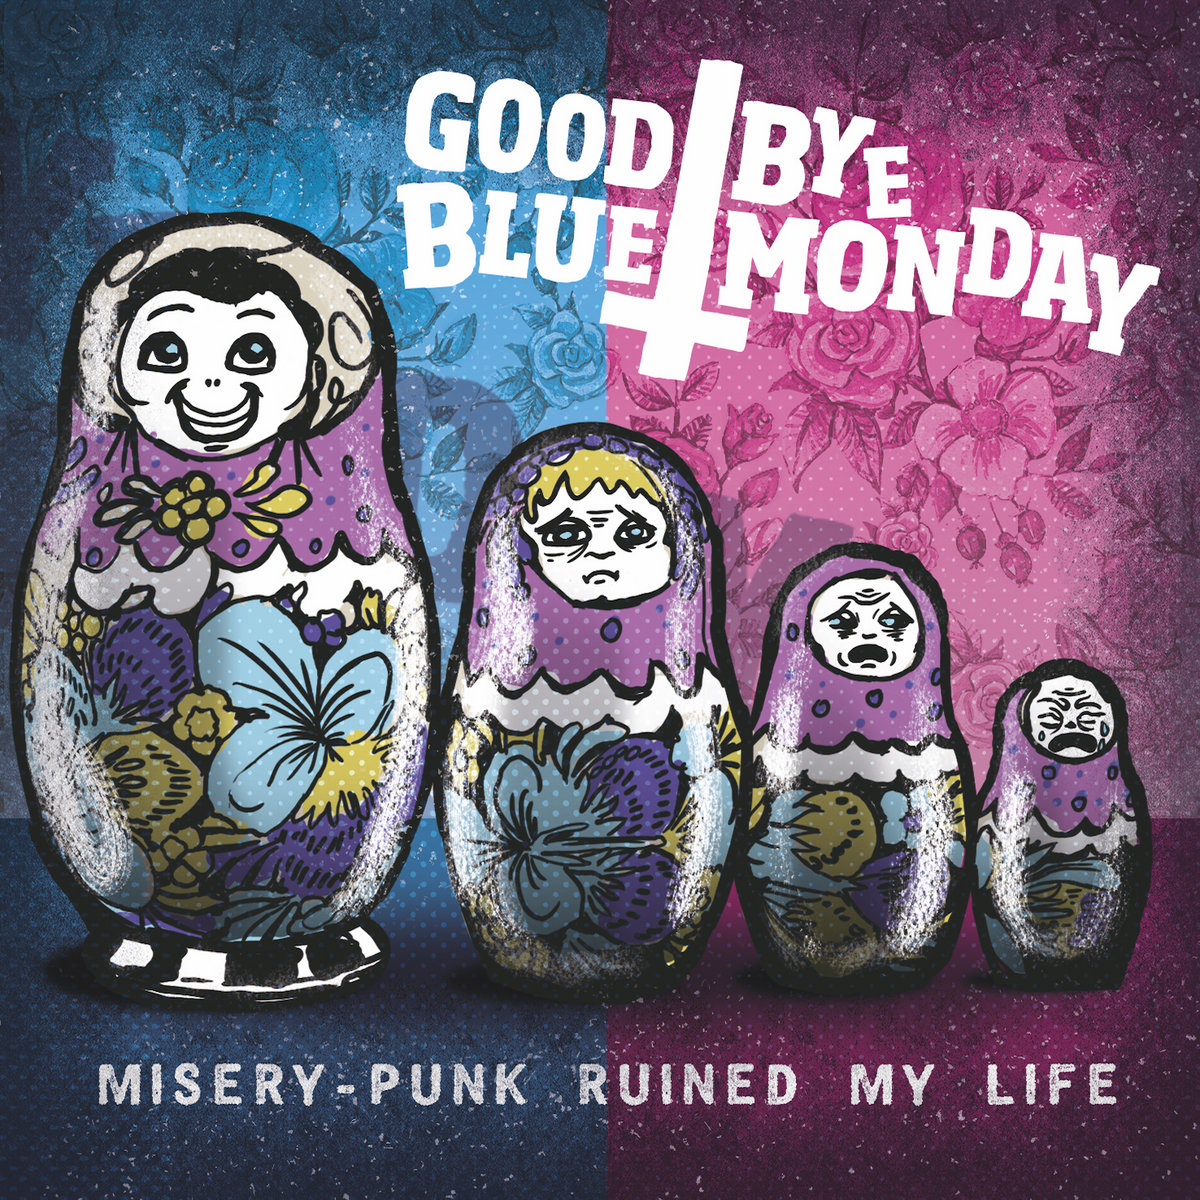 Misery Punk Ruined My Life Goodbye Blue Monday